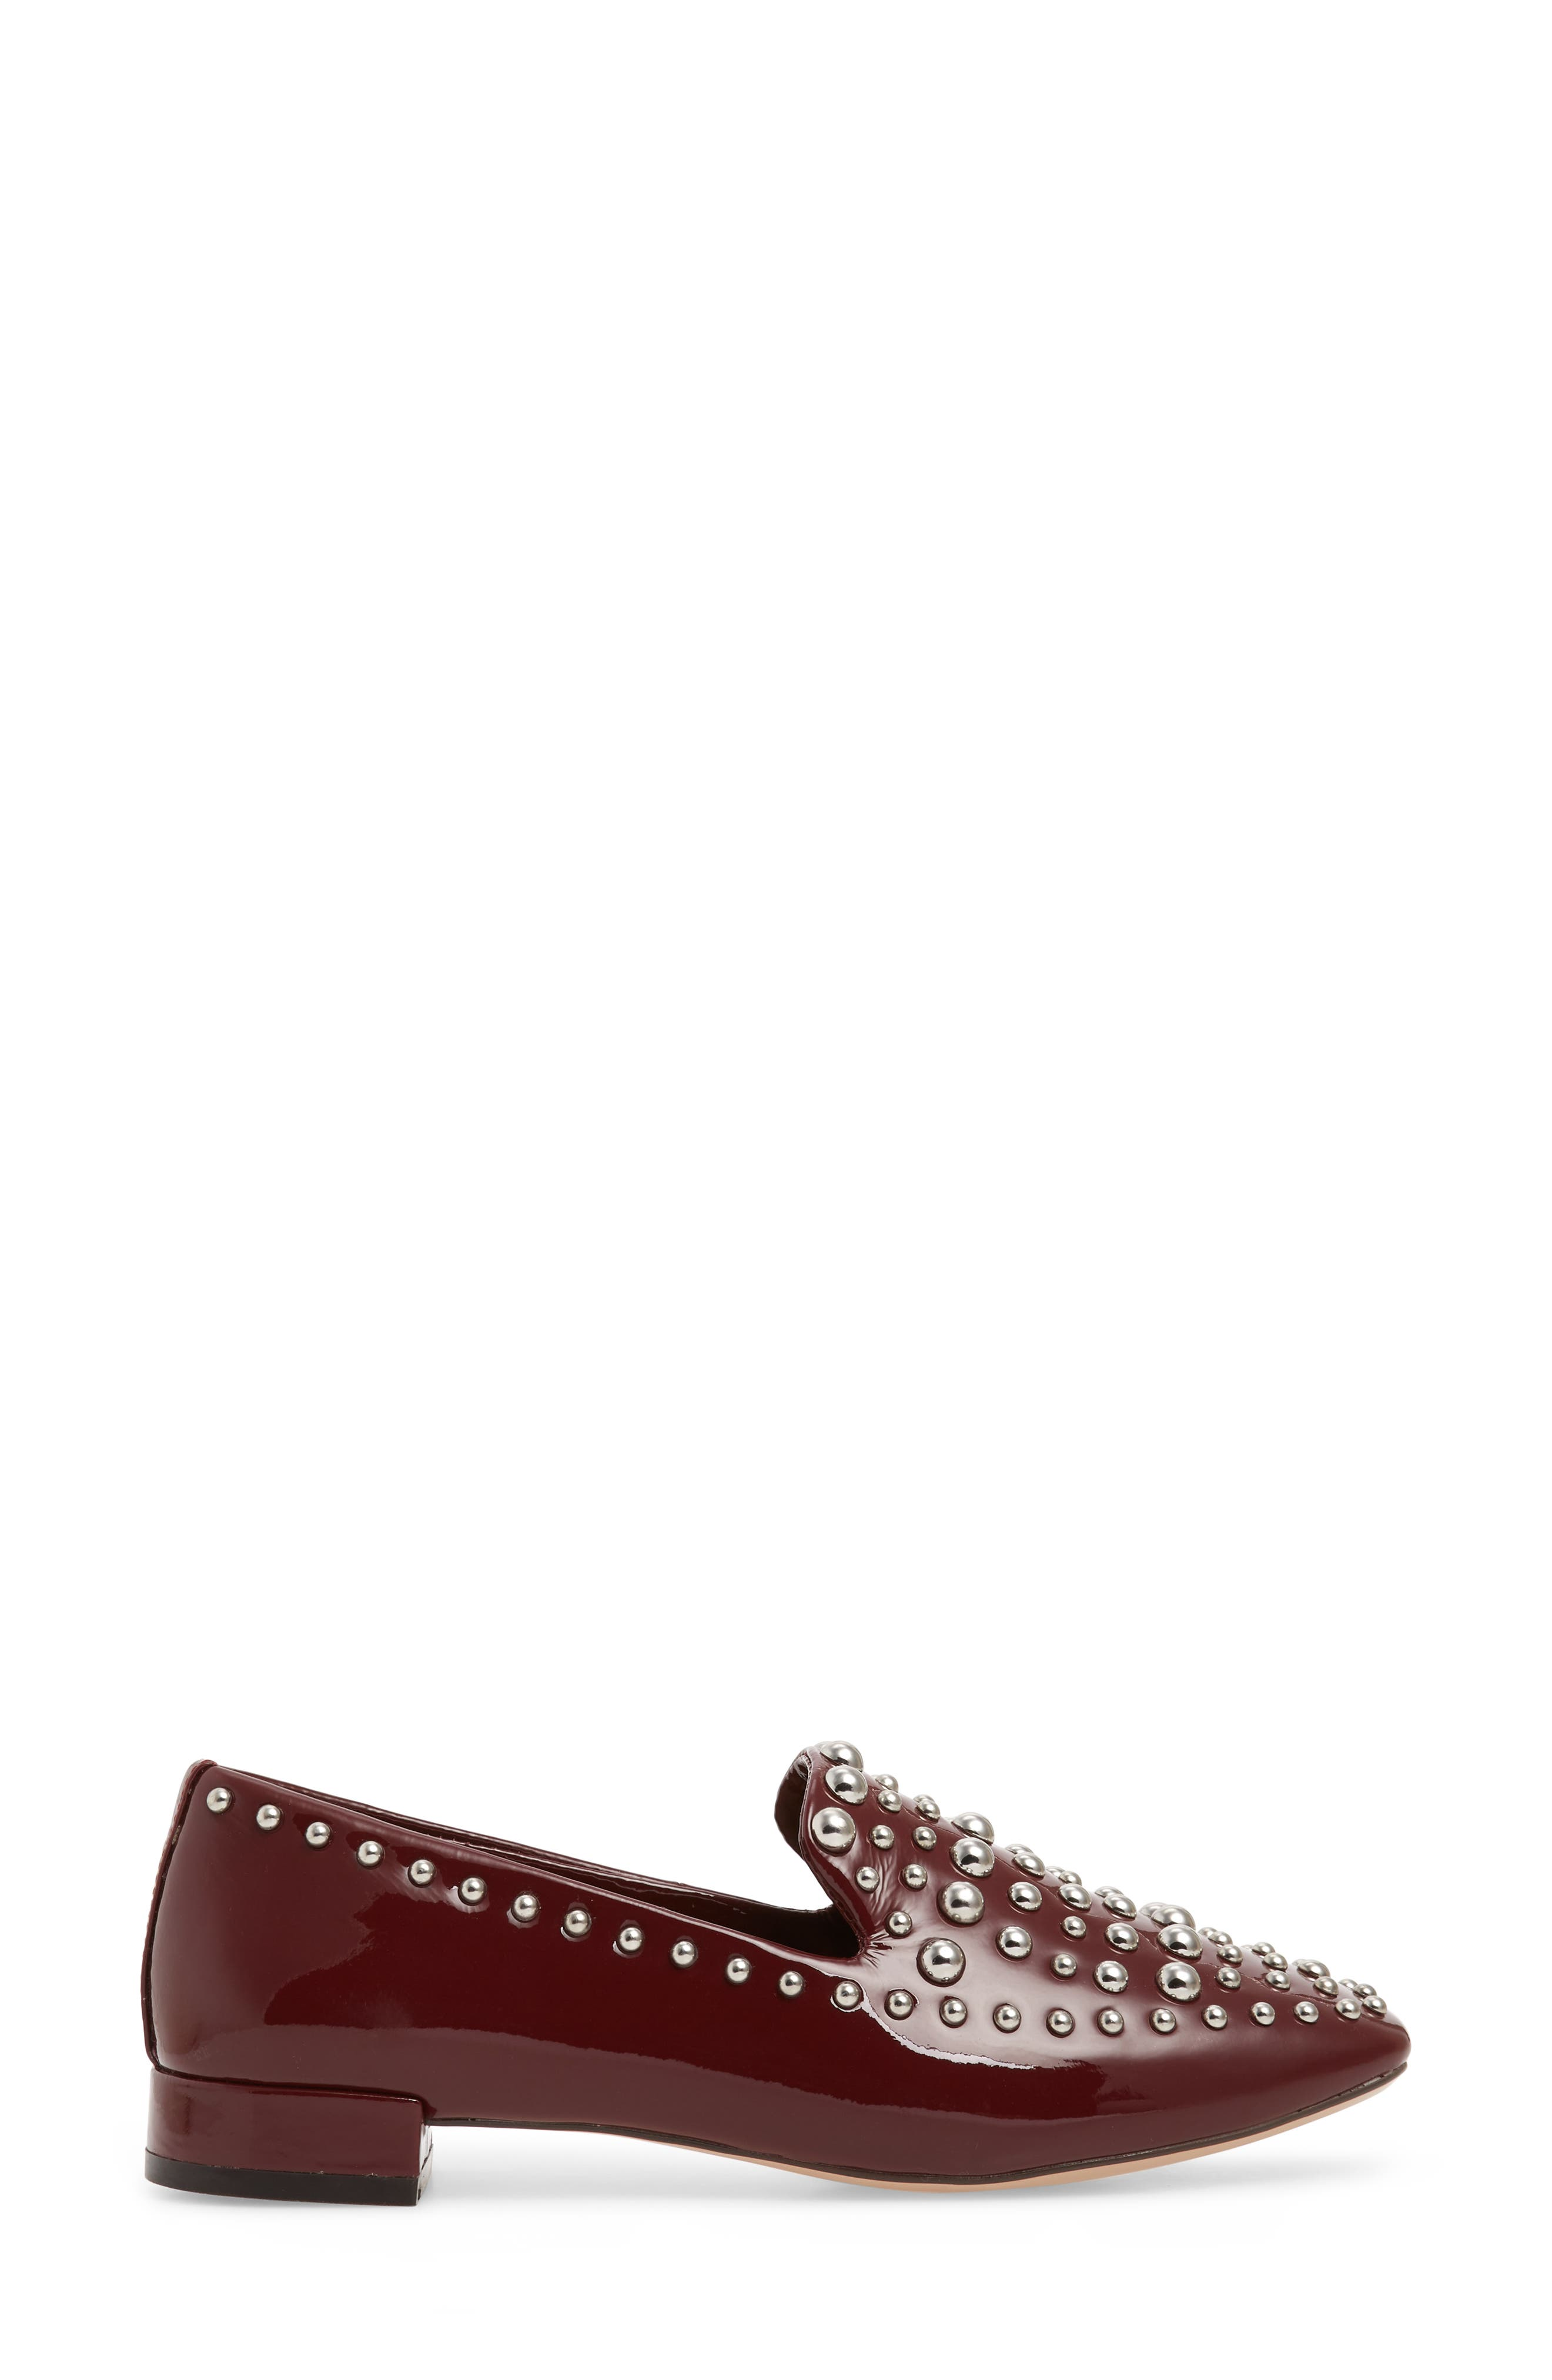 Kaylee Loafer,                             Alternate thumbnail 3, color,                             BERRY PATENT LEATHER